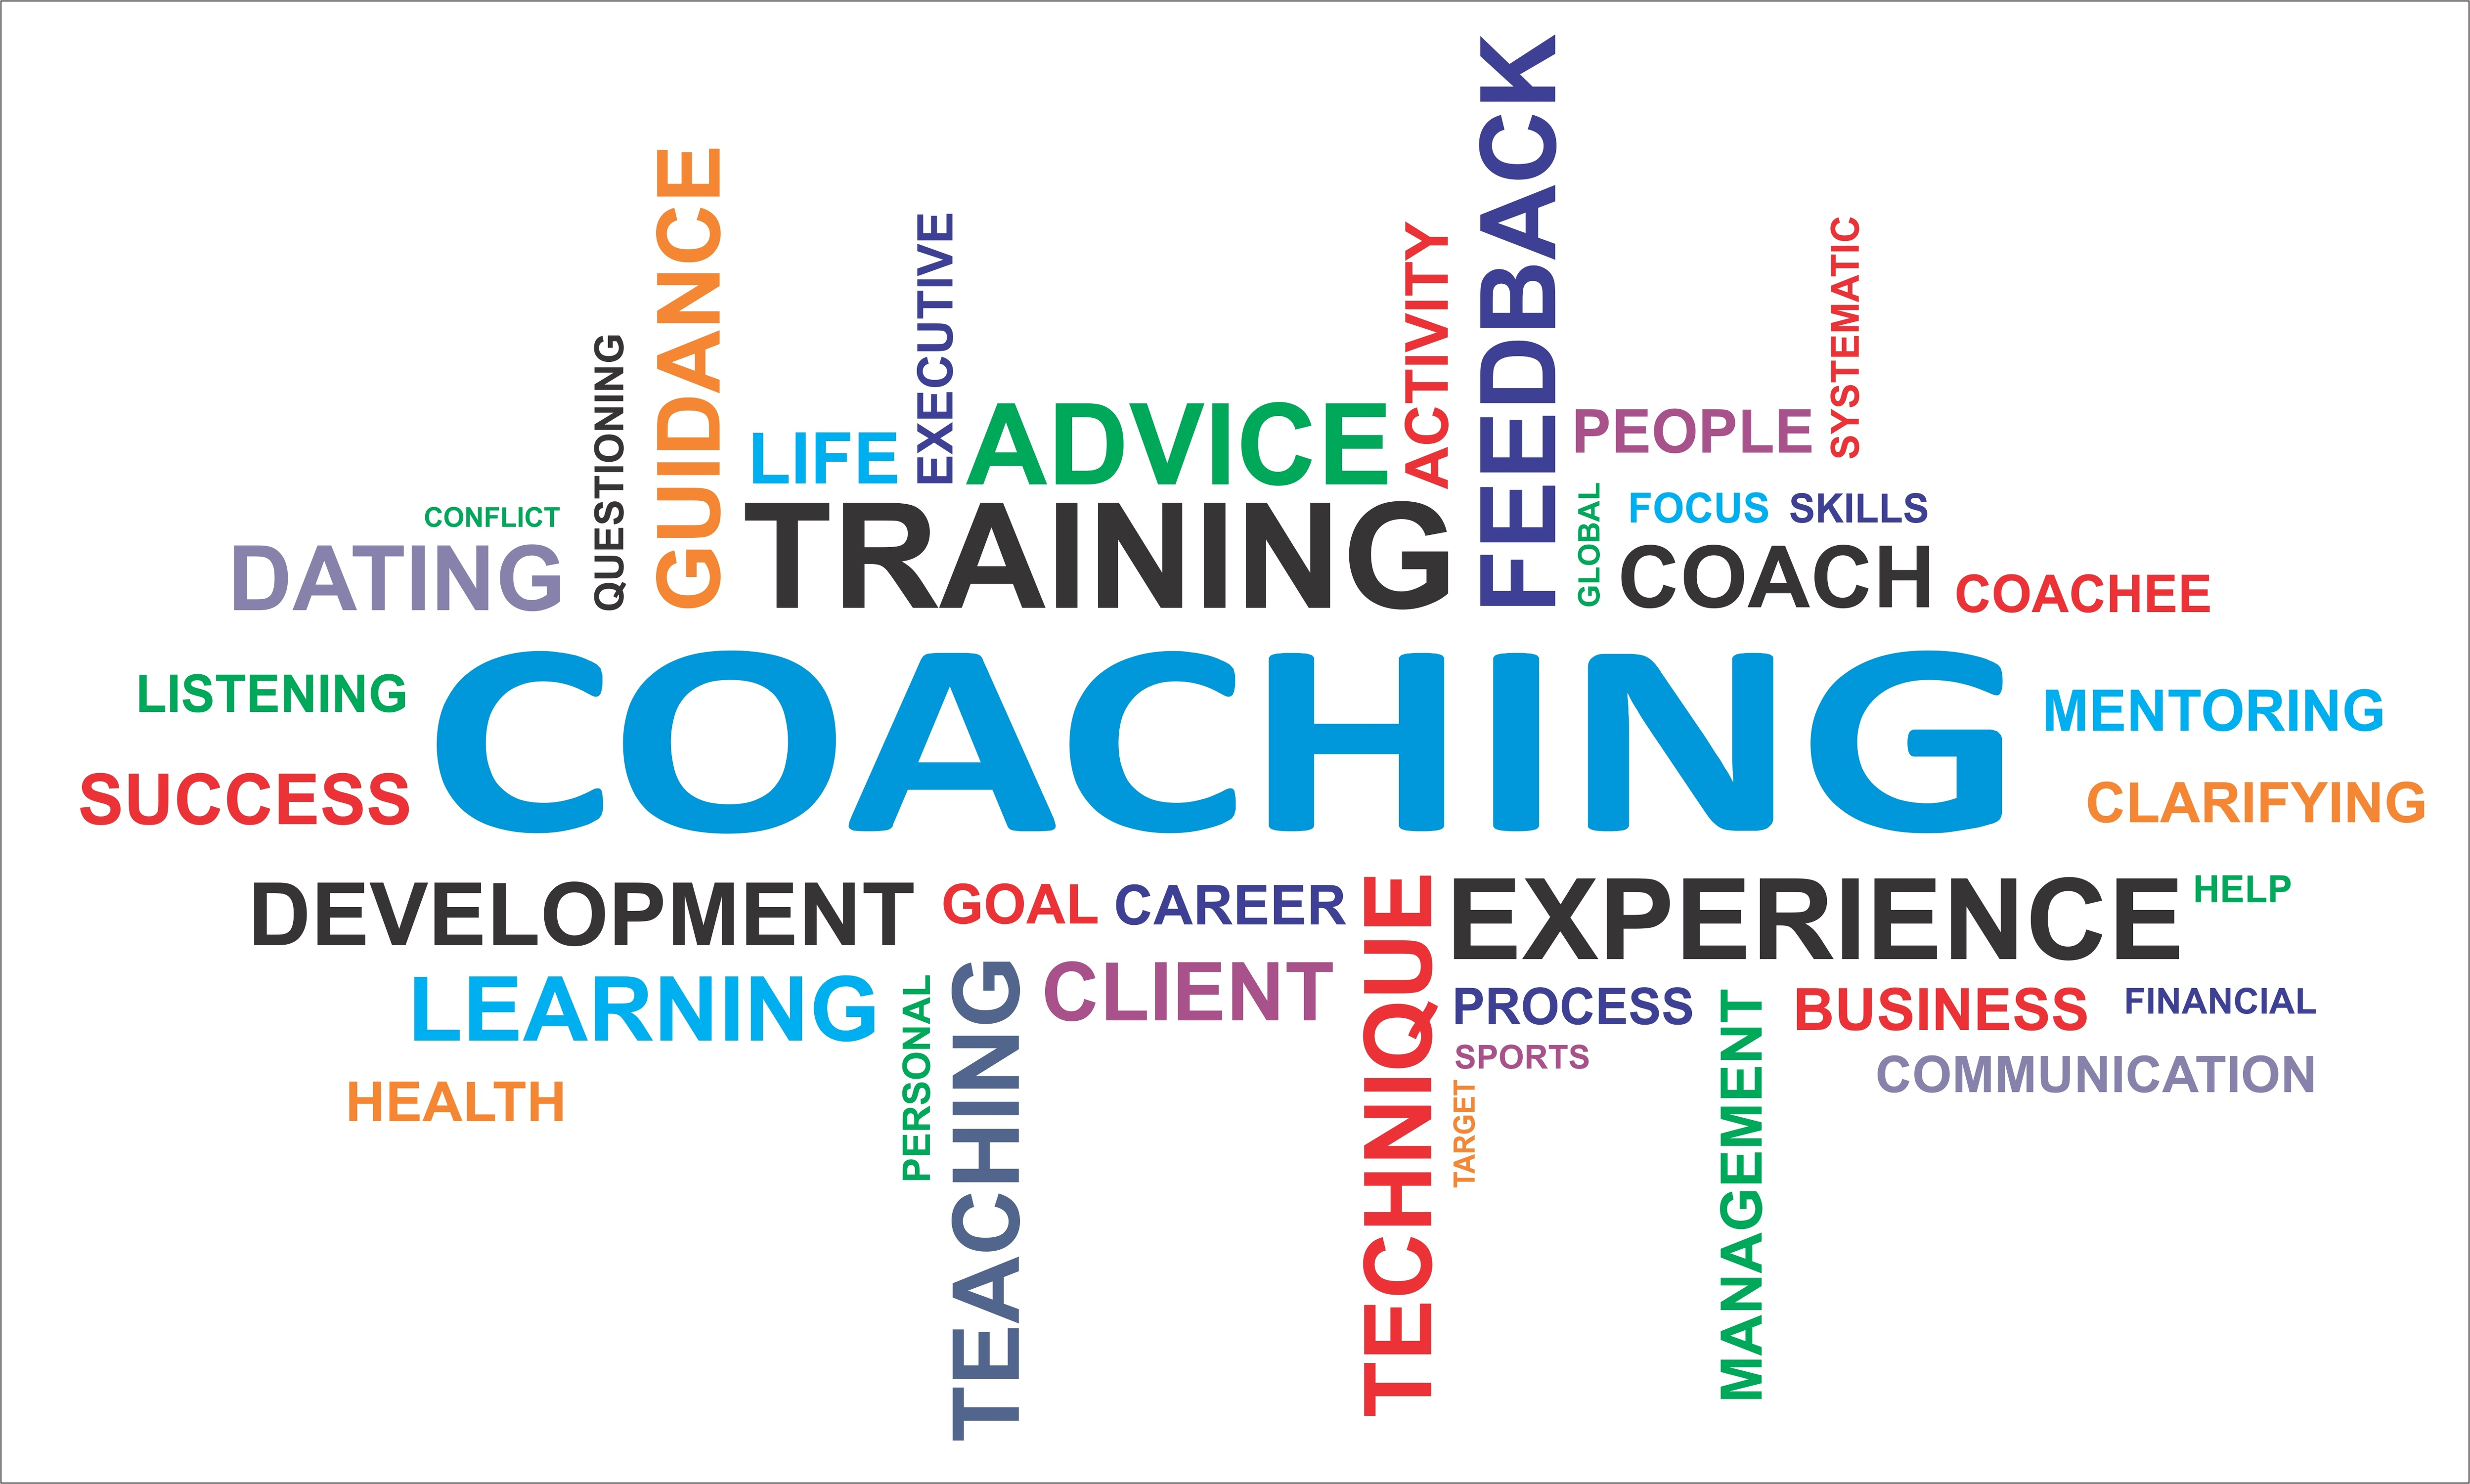 Life Coaching Offers People a Better Experience